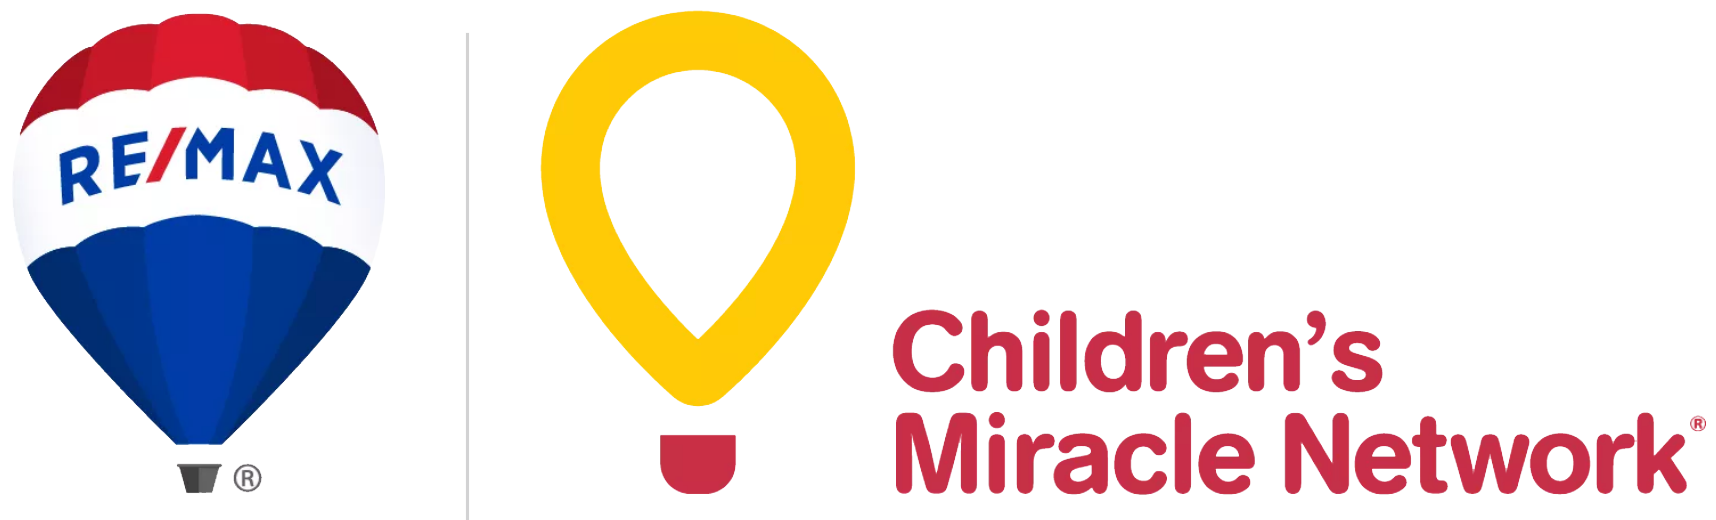 We support Children's Miracle Network Hospitals with a portion of every commission.